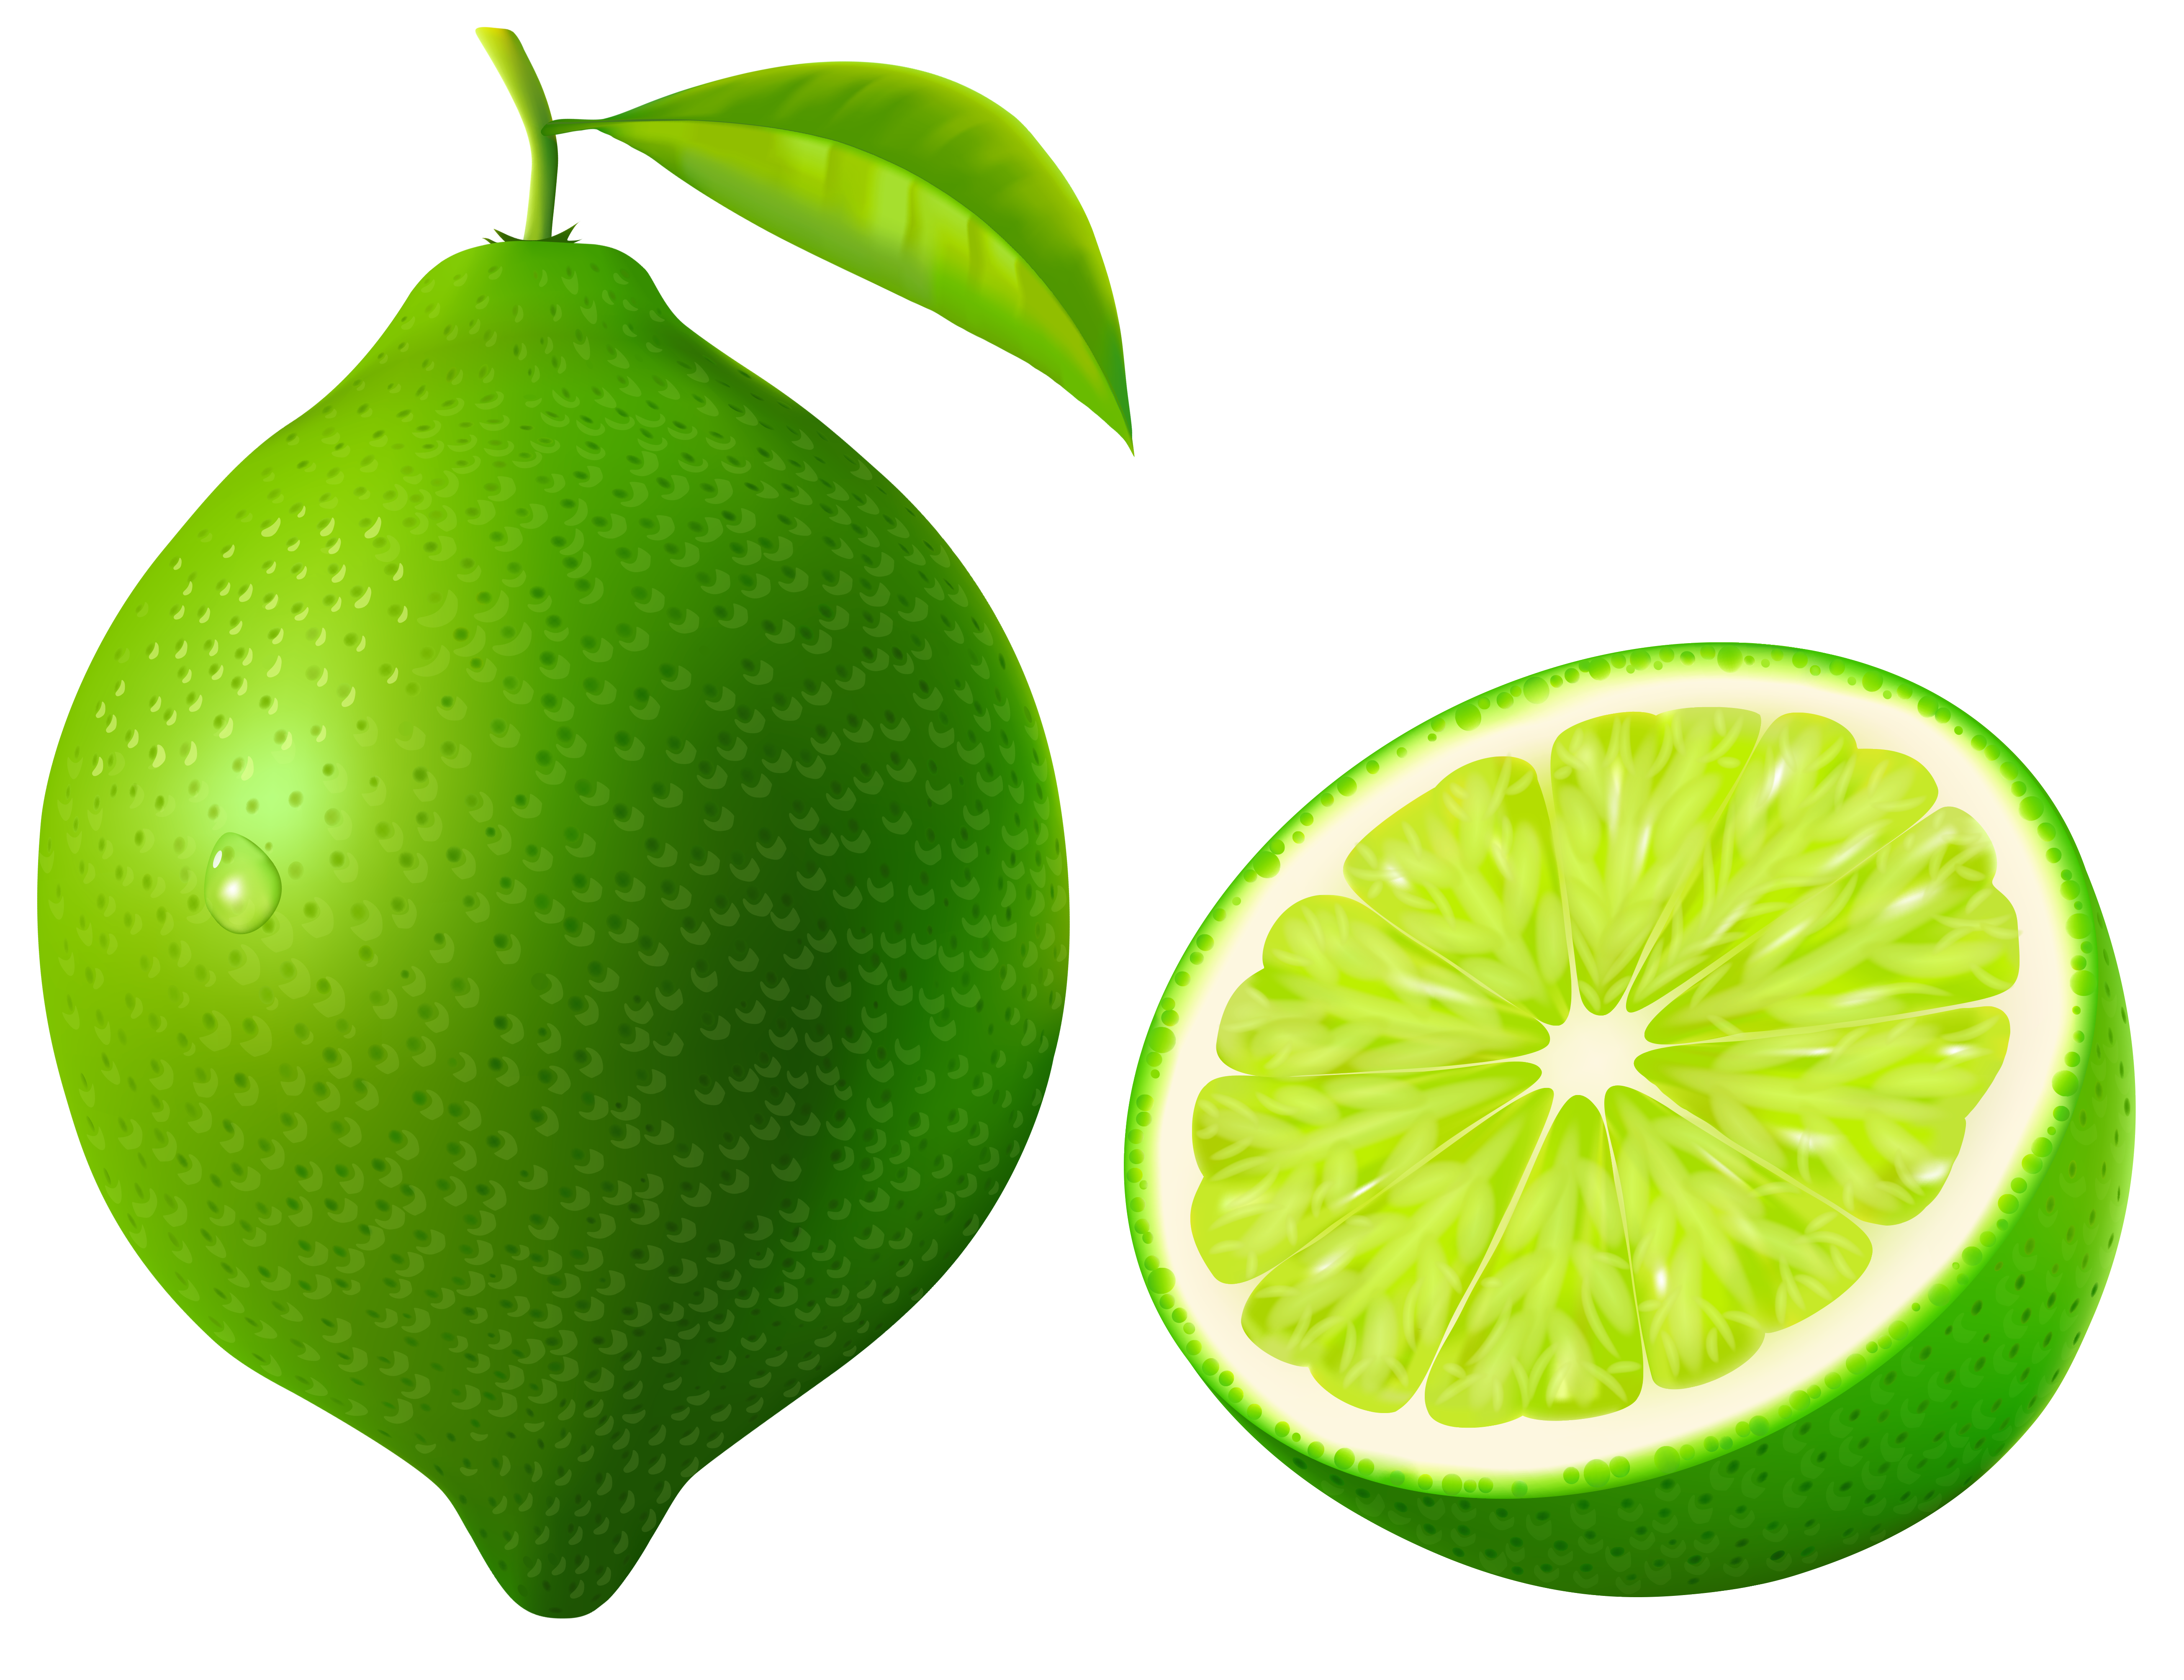 Limes clipart #7